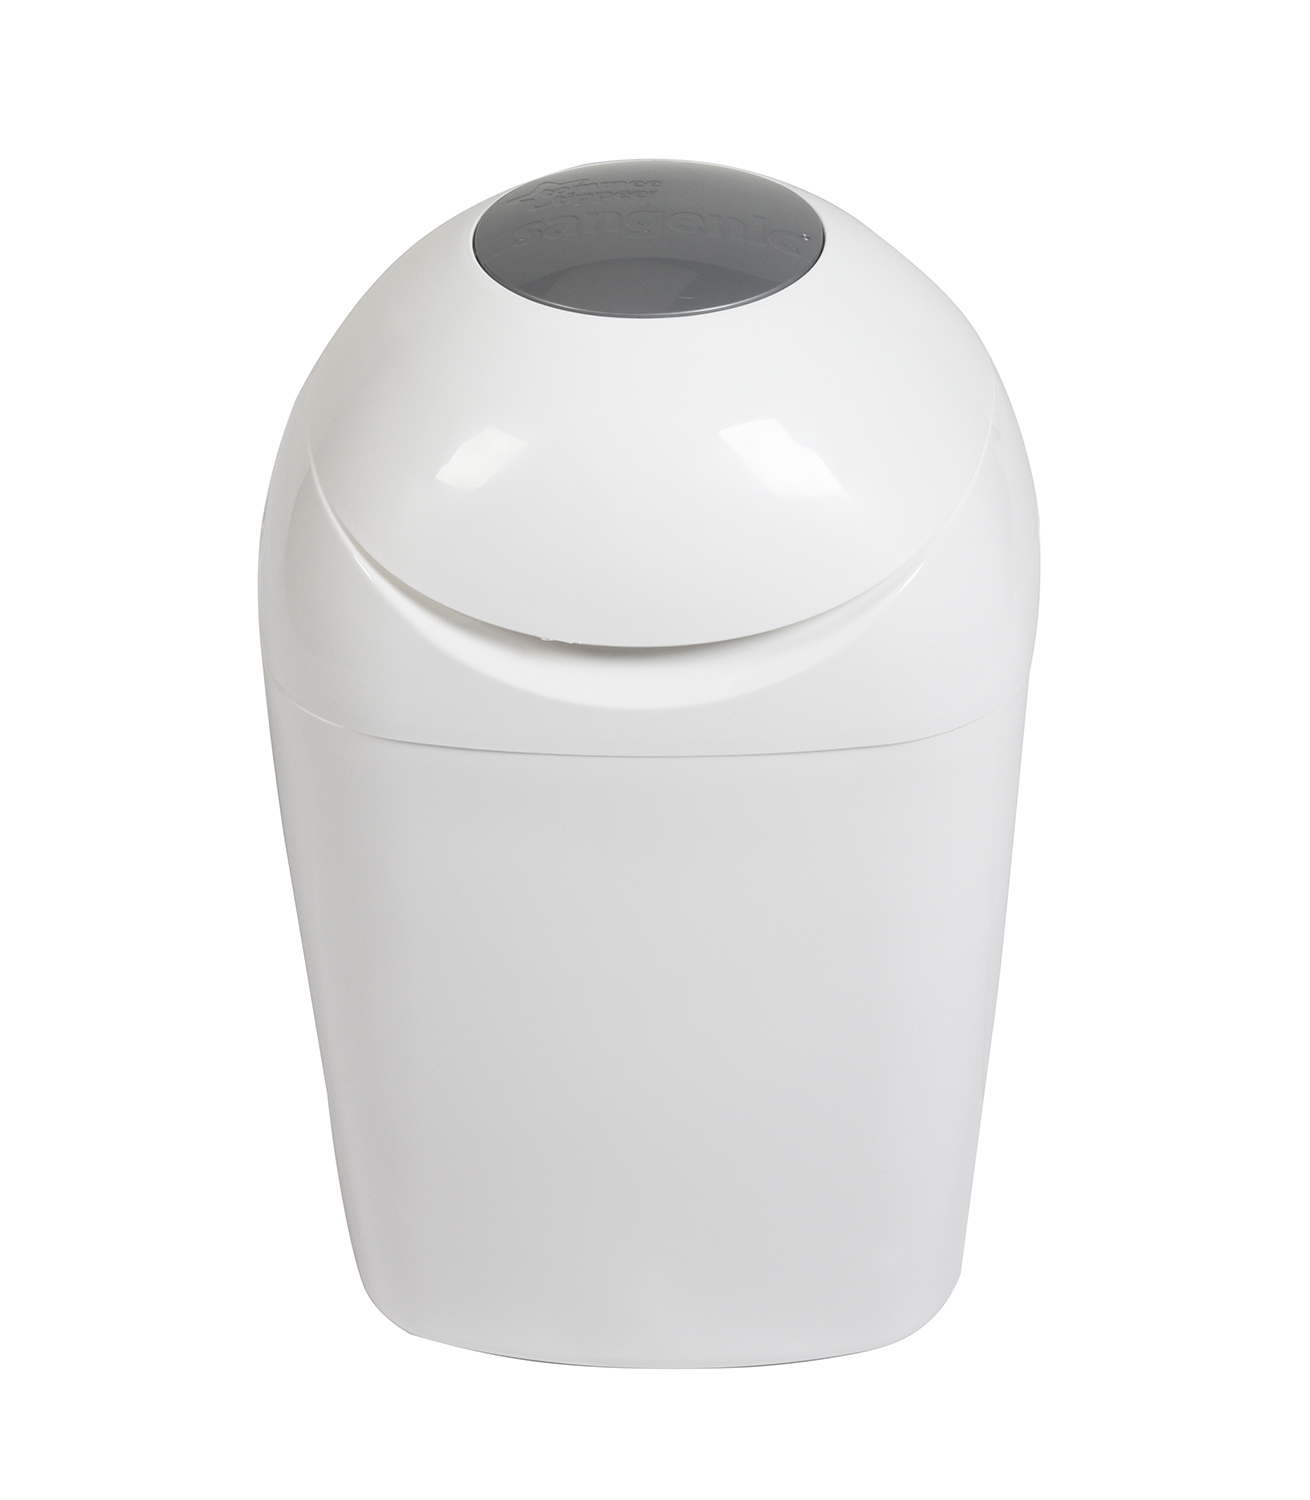 Tommee Tippee Sangenic Nappy Disposal Tub | Kiddicare